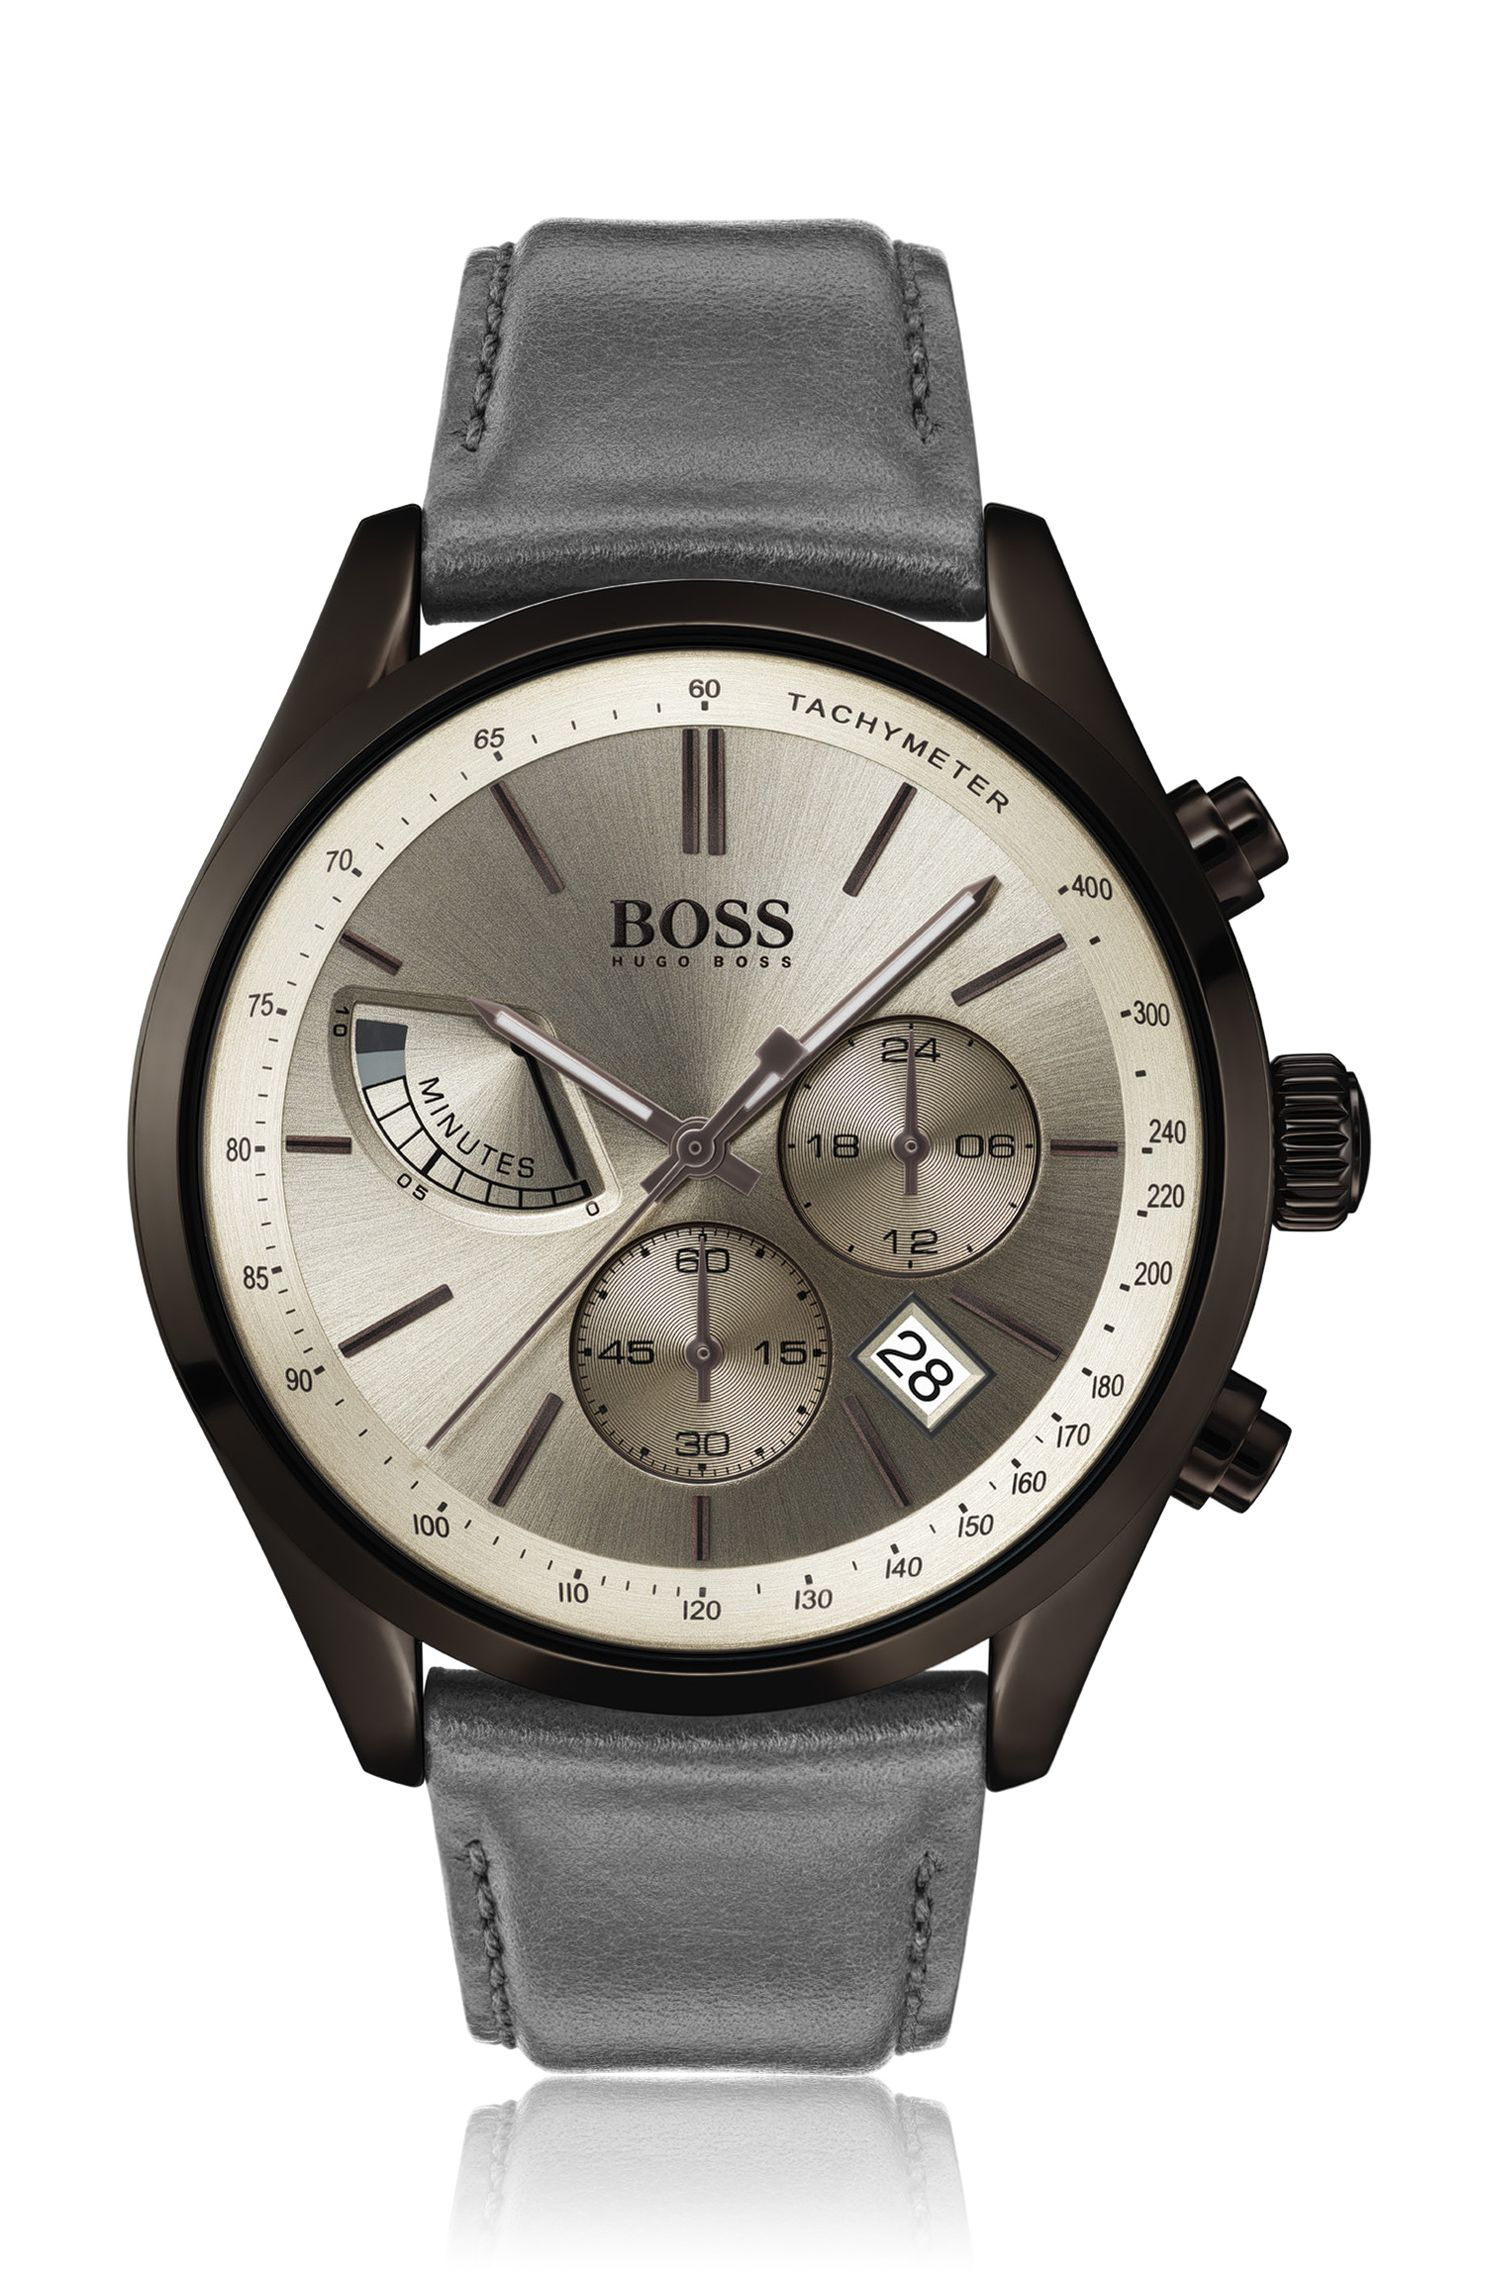 Racing-inspired chronograph watch with carnation-gold dial, Grey